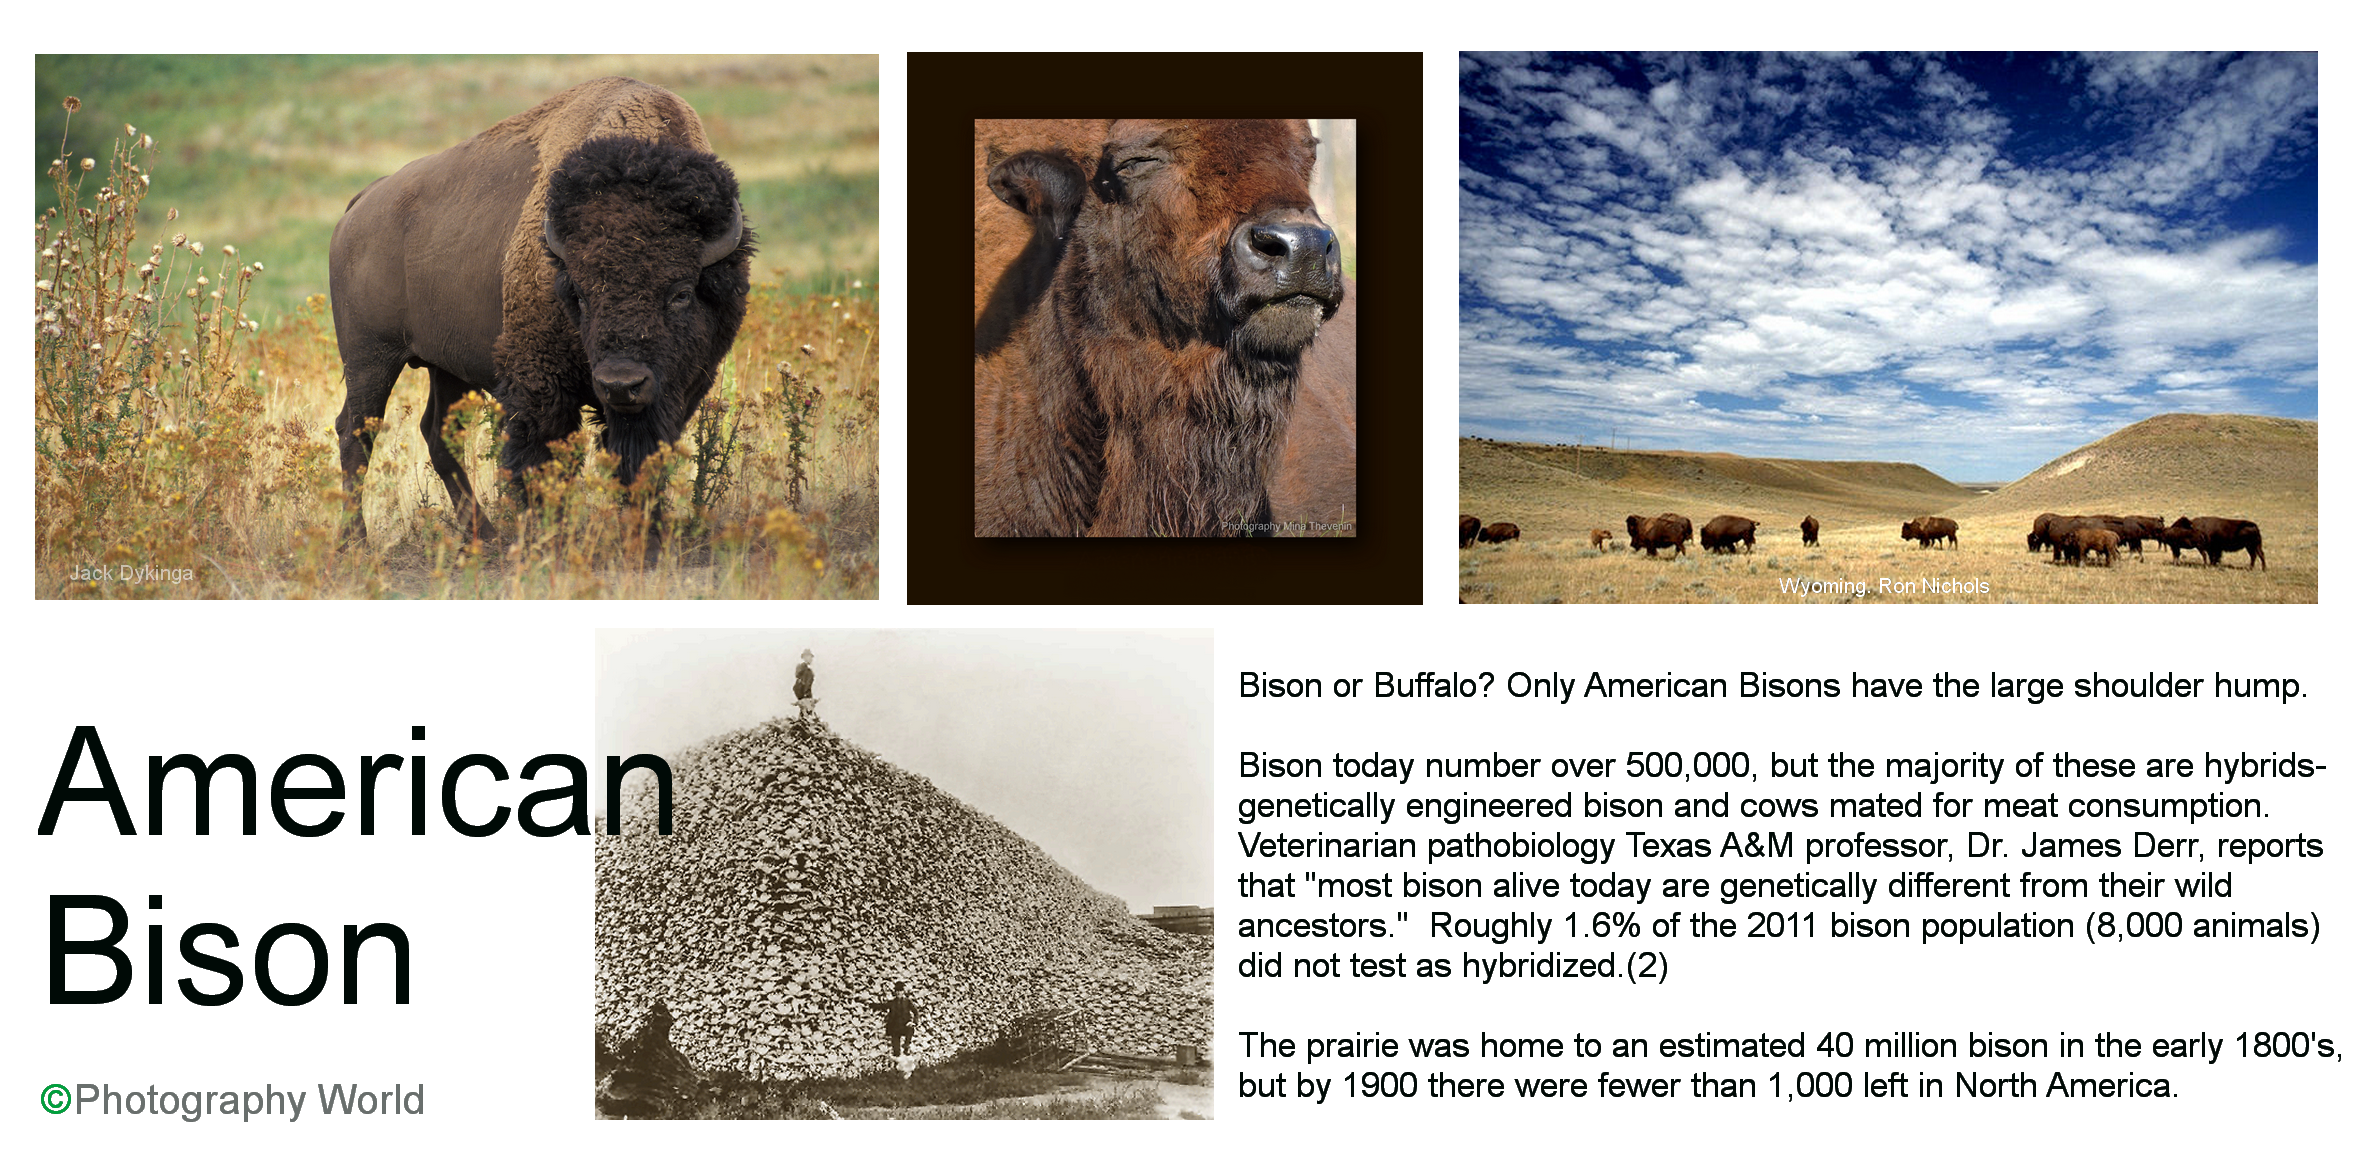 American Bison text PW